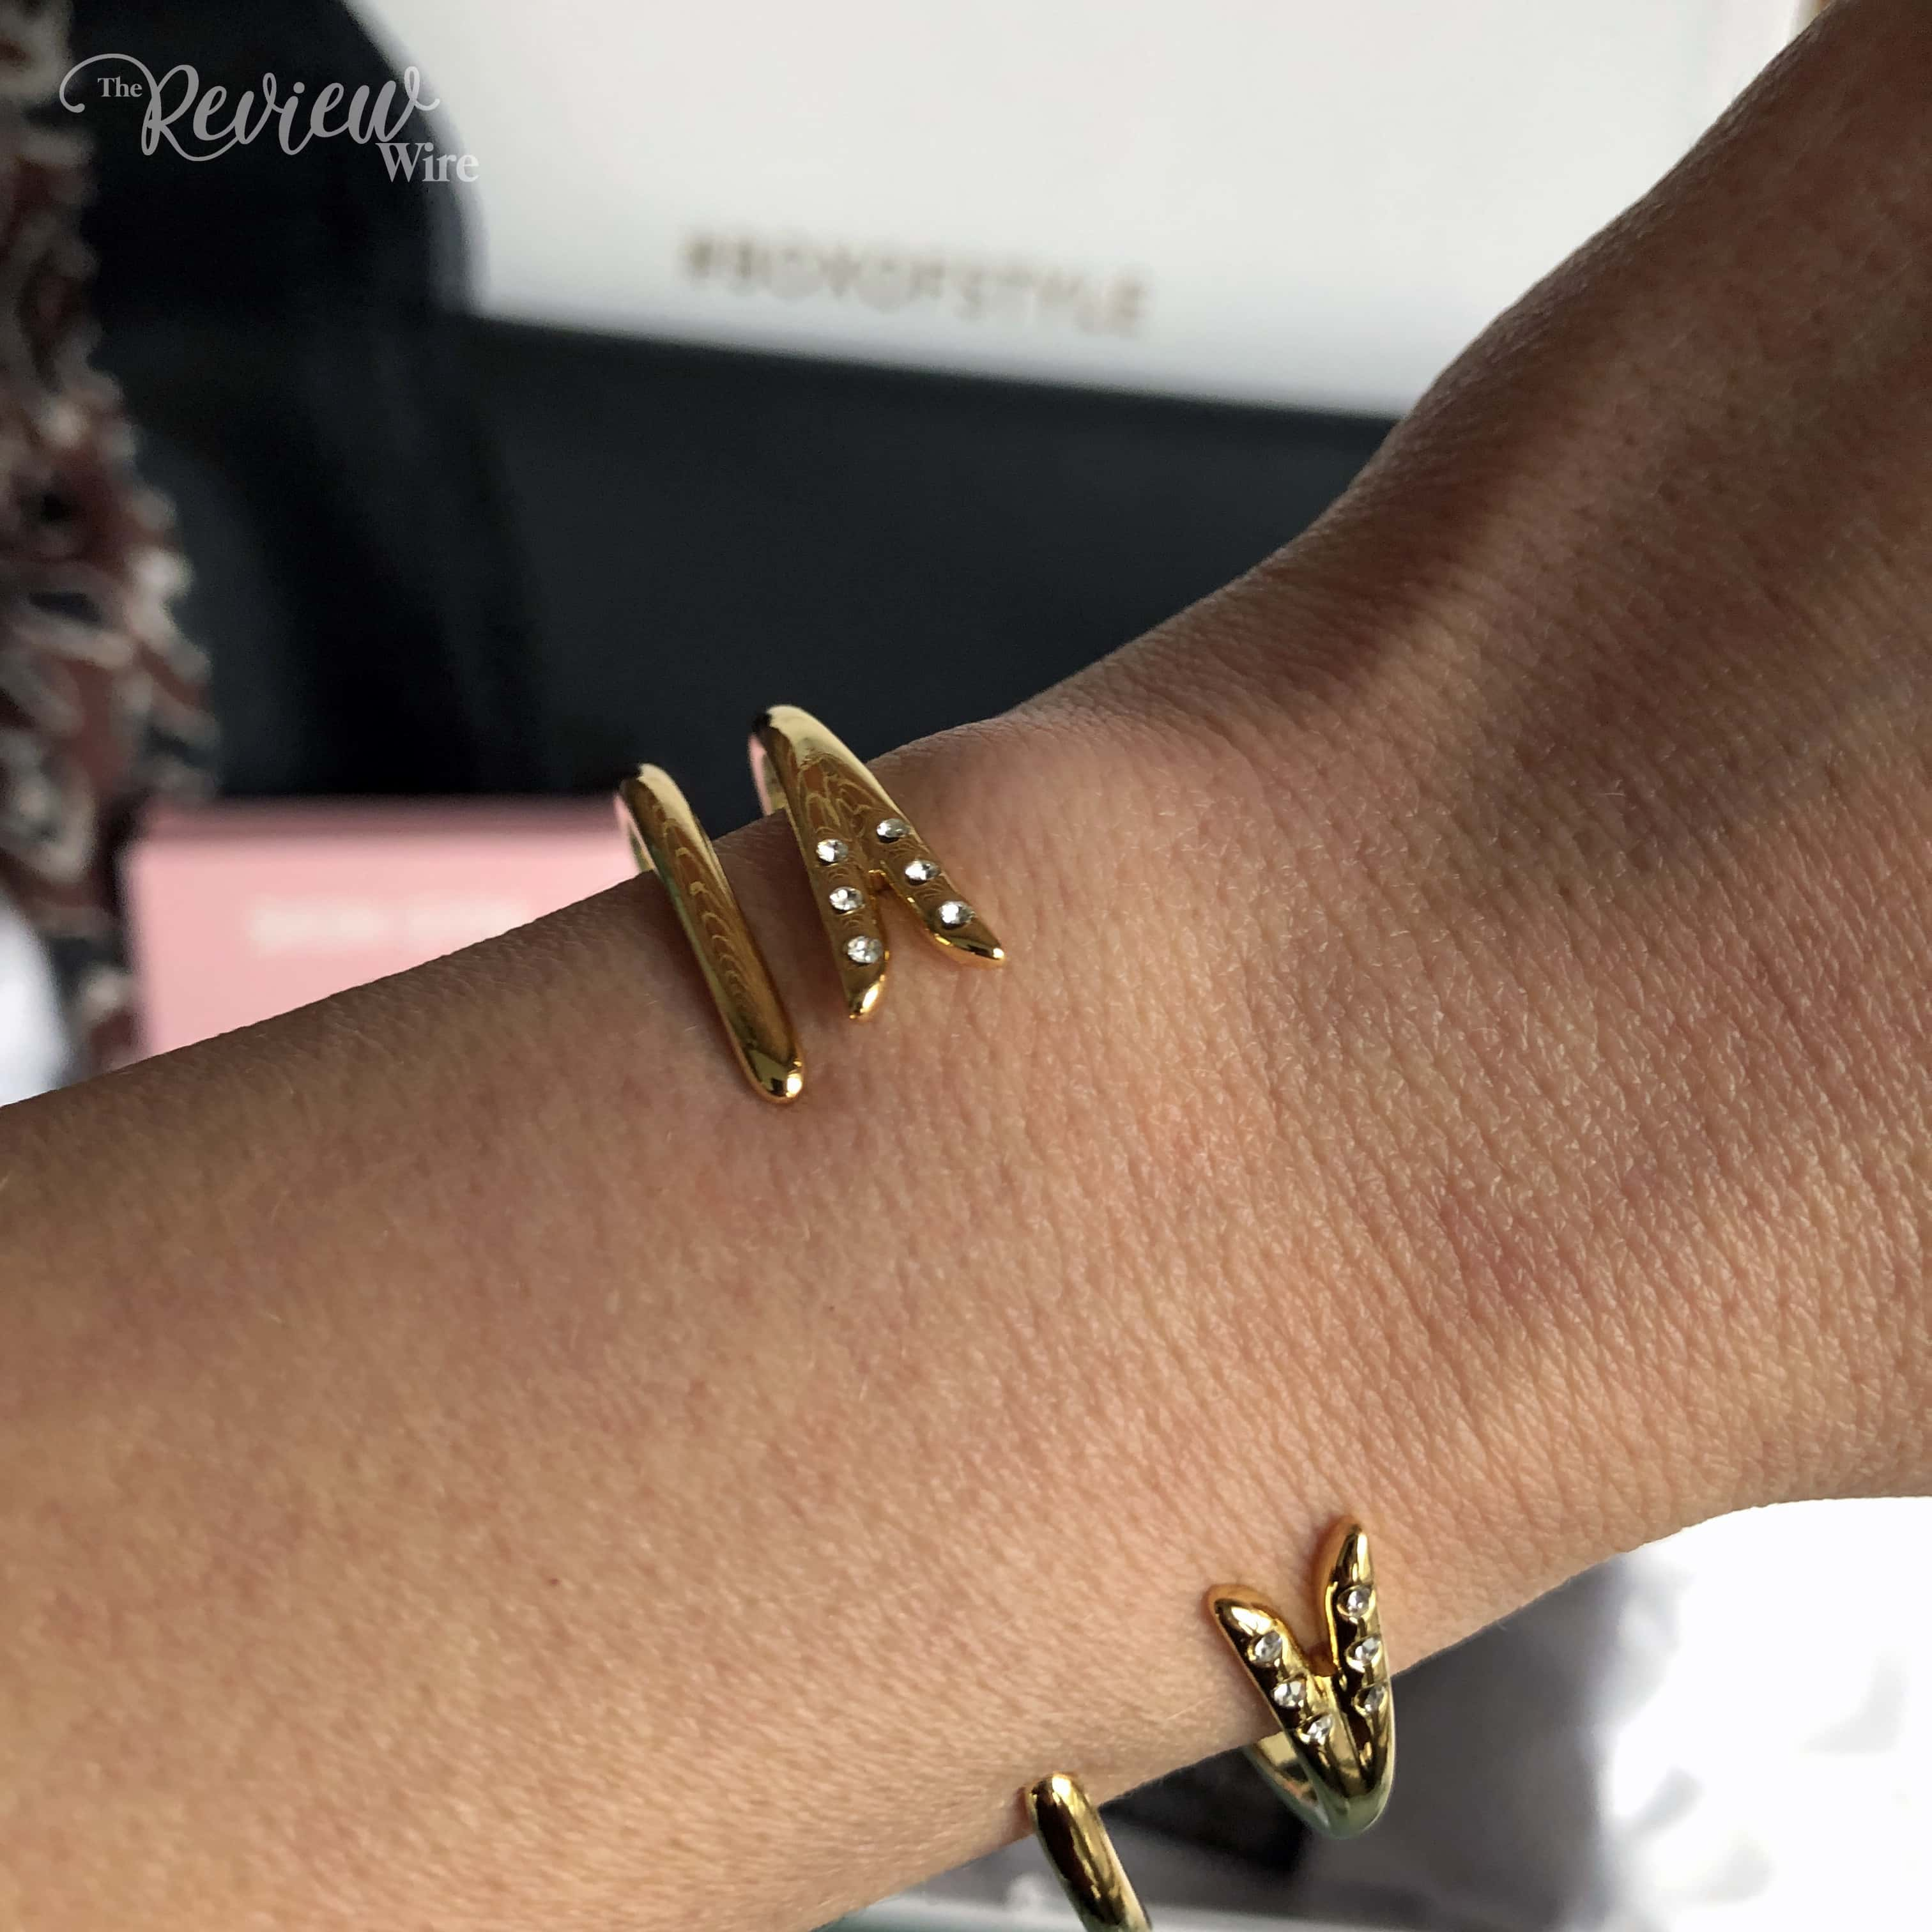 The Review Wire: Spring 2019 Rachel Zoe's Box of Style Video Unboxing - Michelle Campbell Gold Talon Bracelet Set